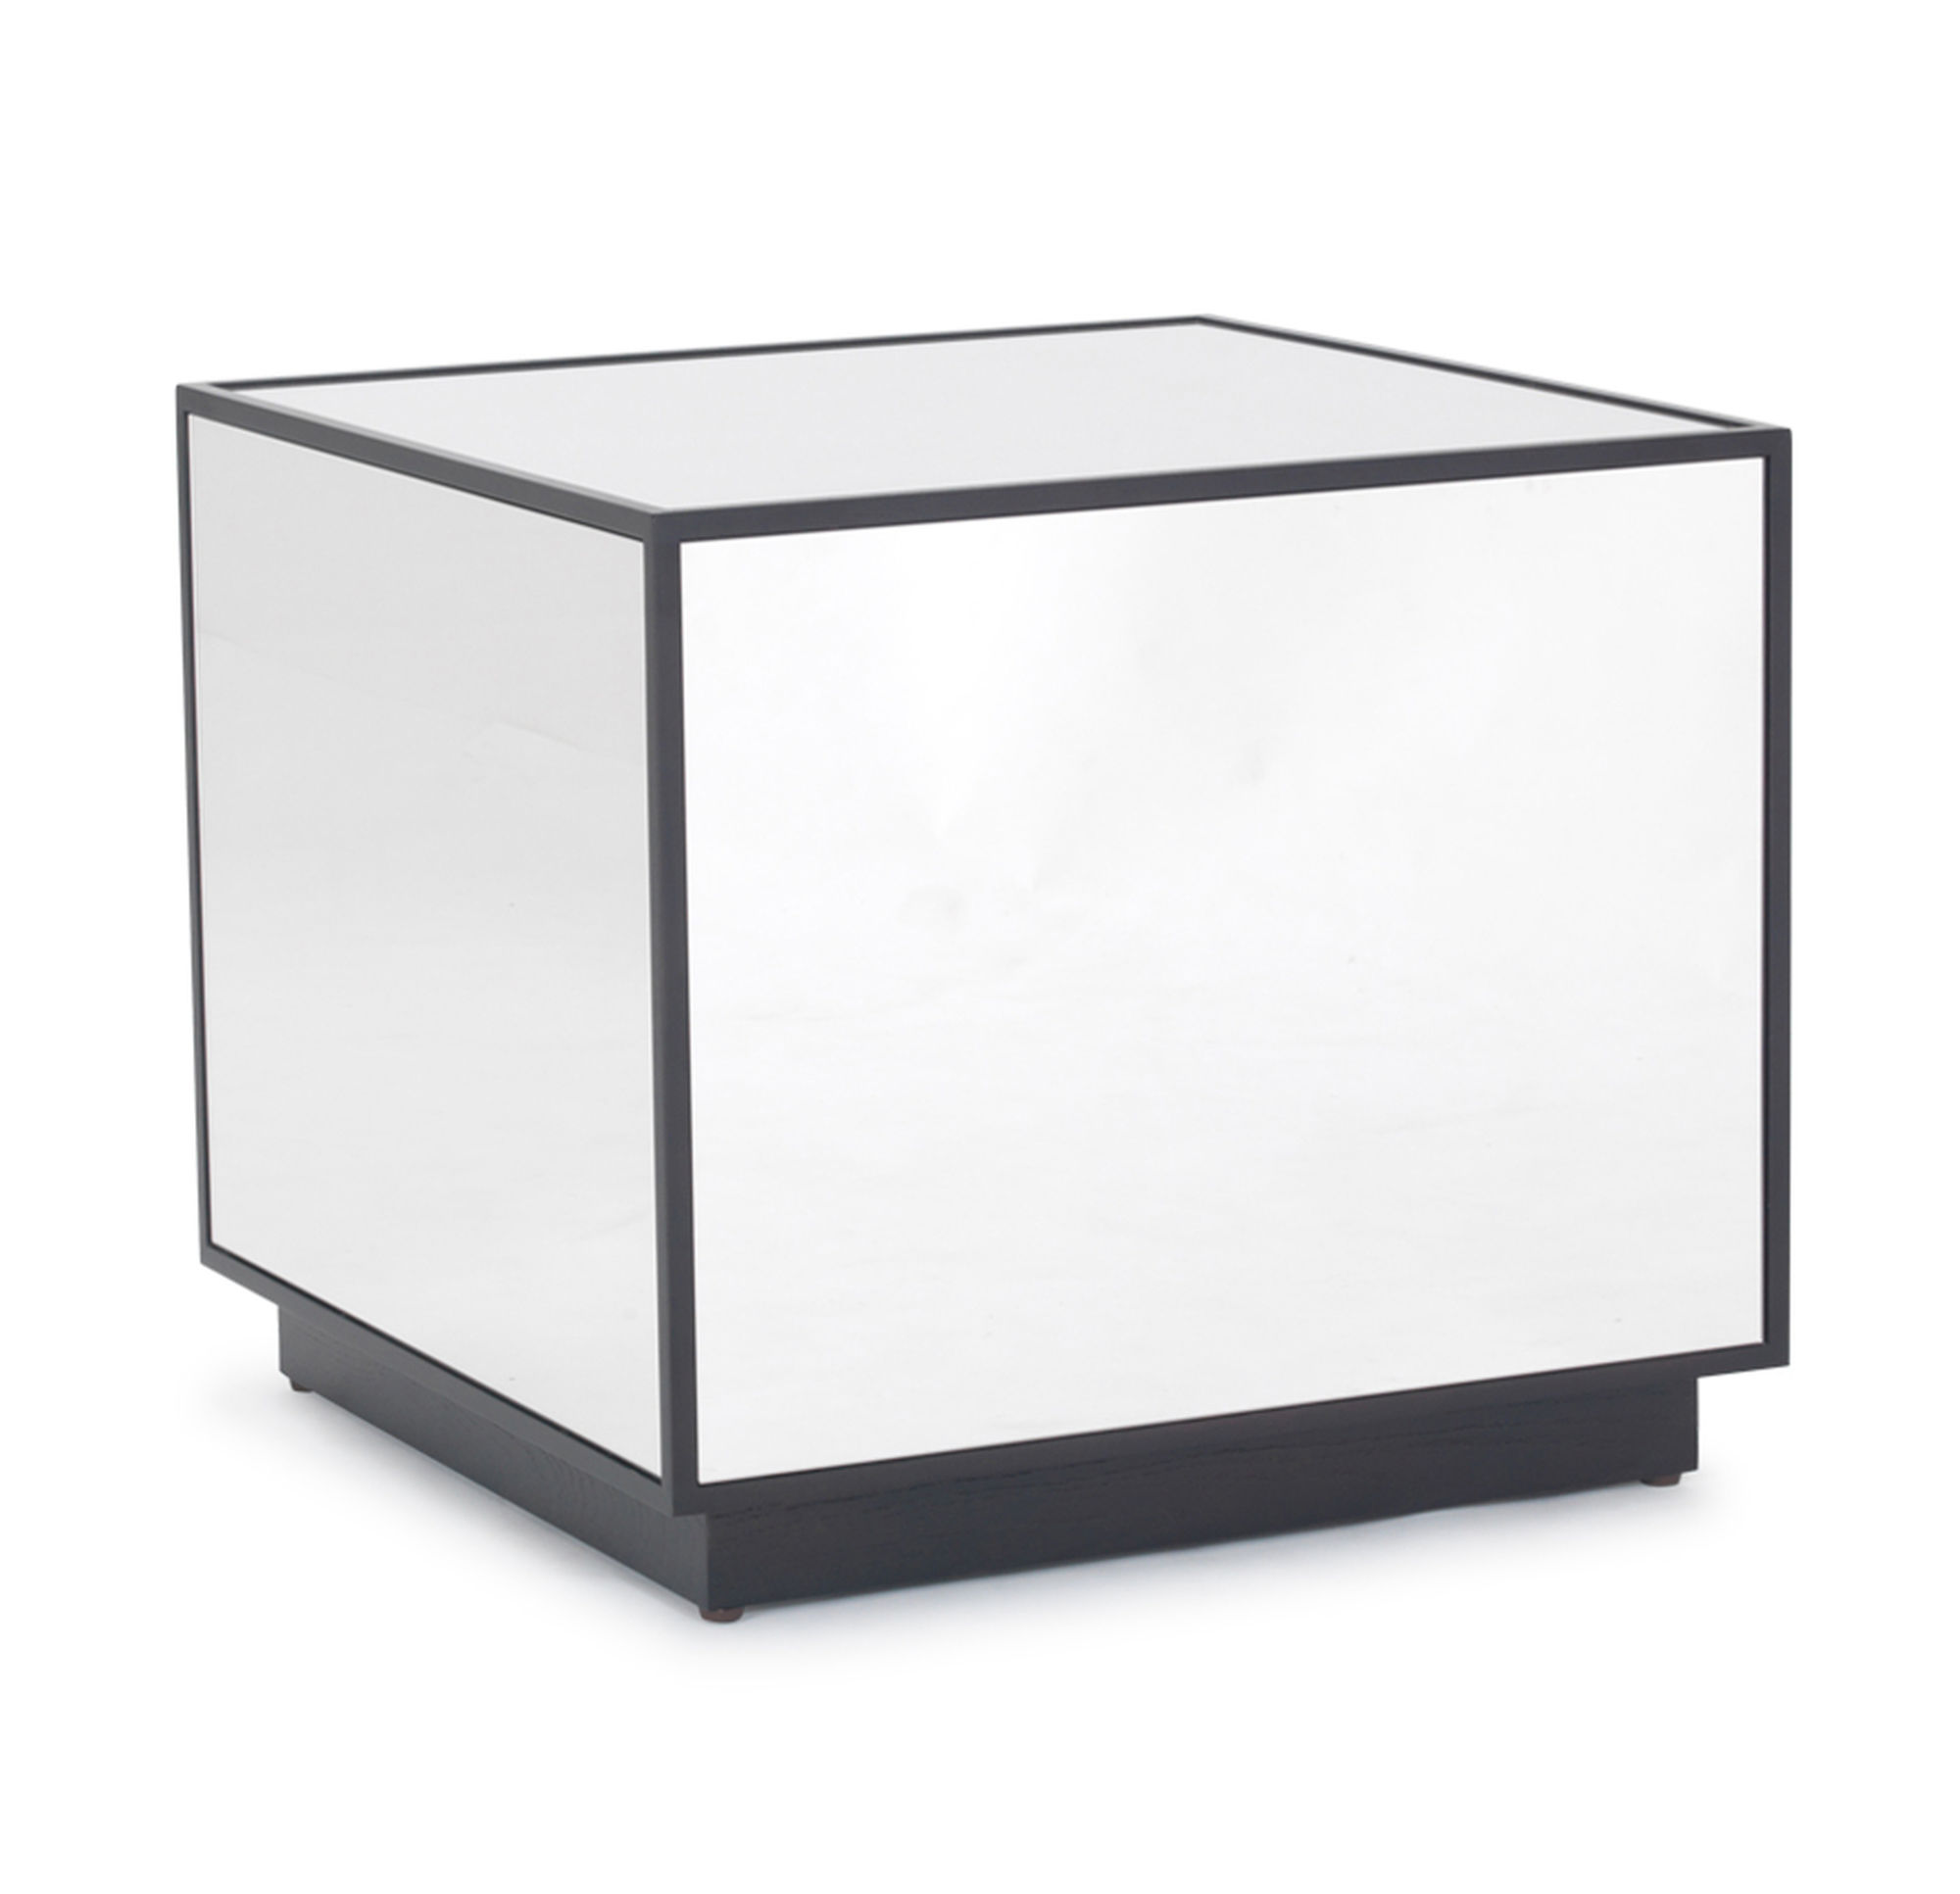 the super fun black side table with drawer ture mira road sutton cube stb hero gray sofa set farmhouse orange demilune old fashioned storage chest threshold mirrored accent gold